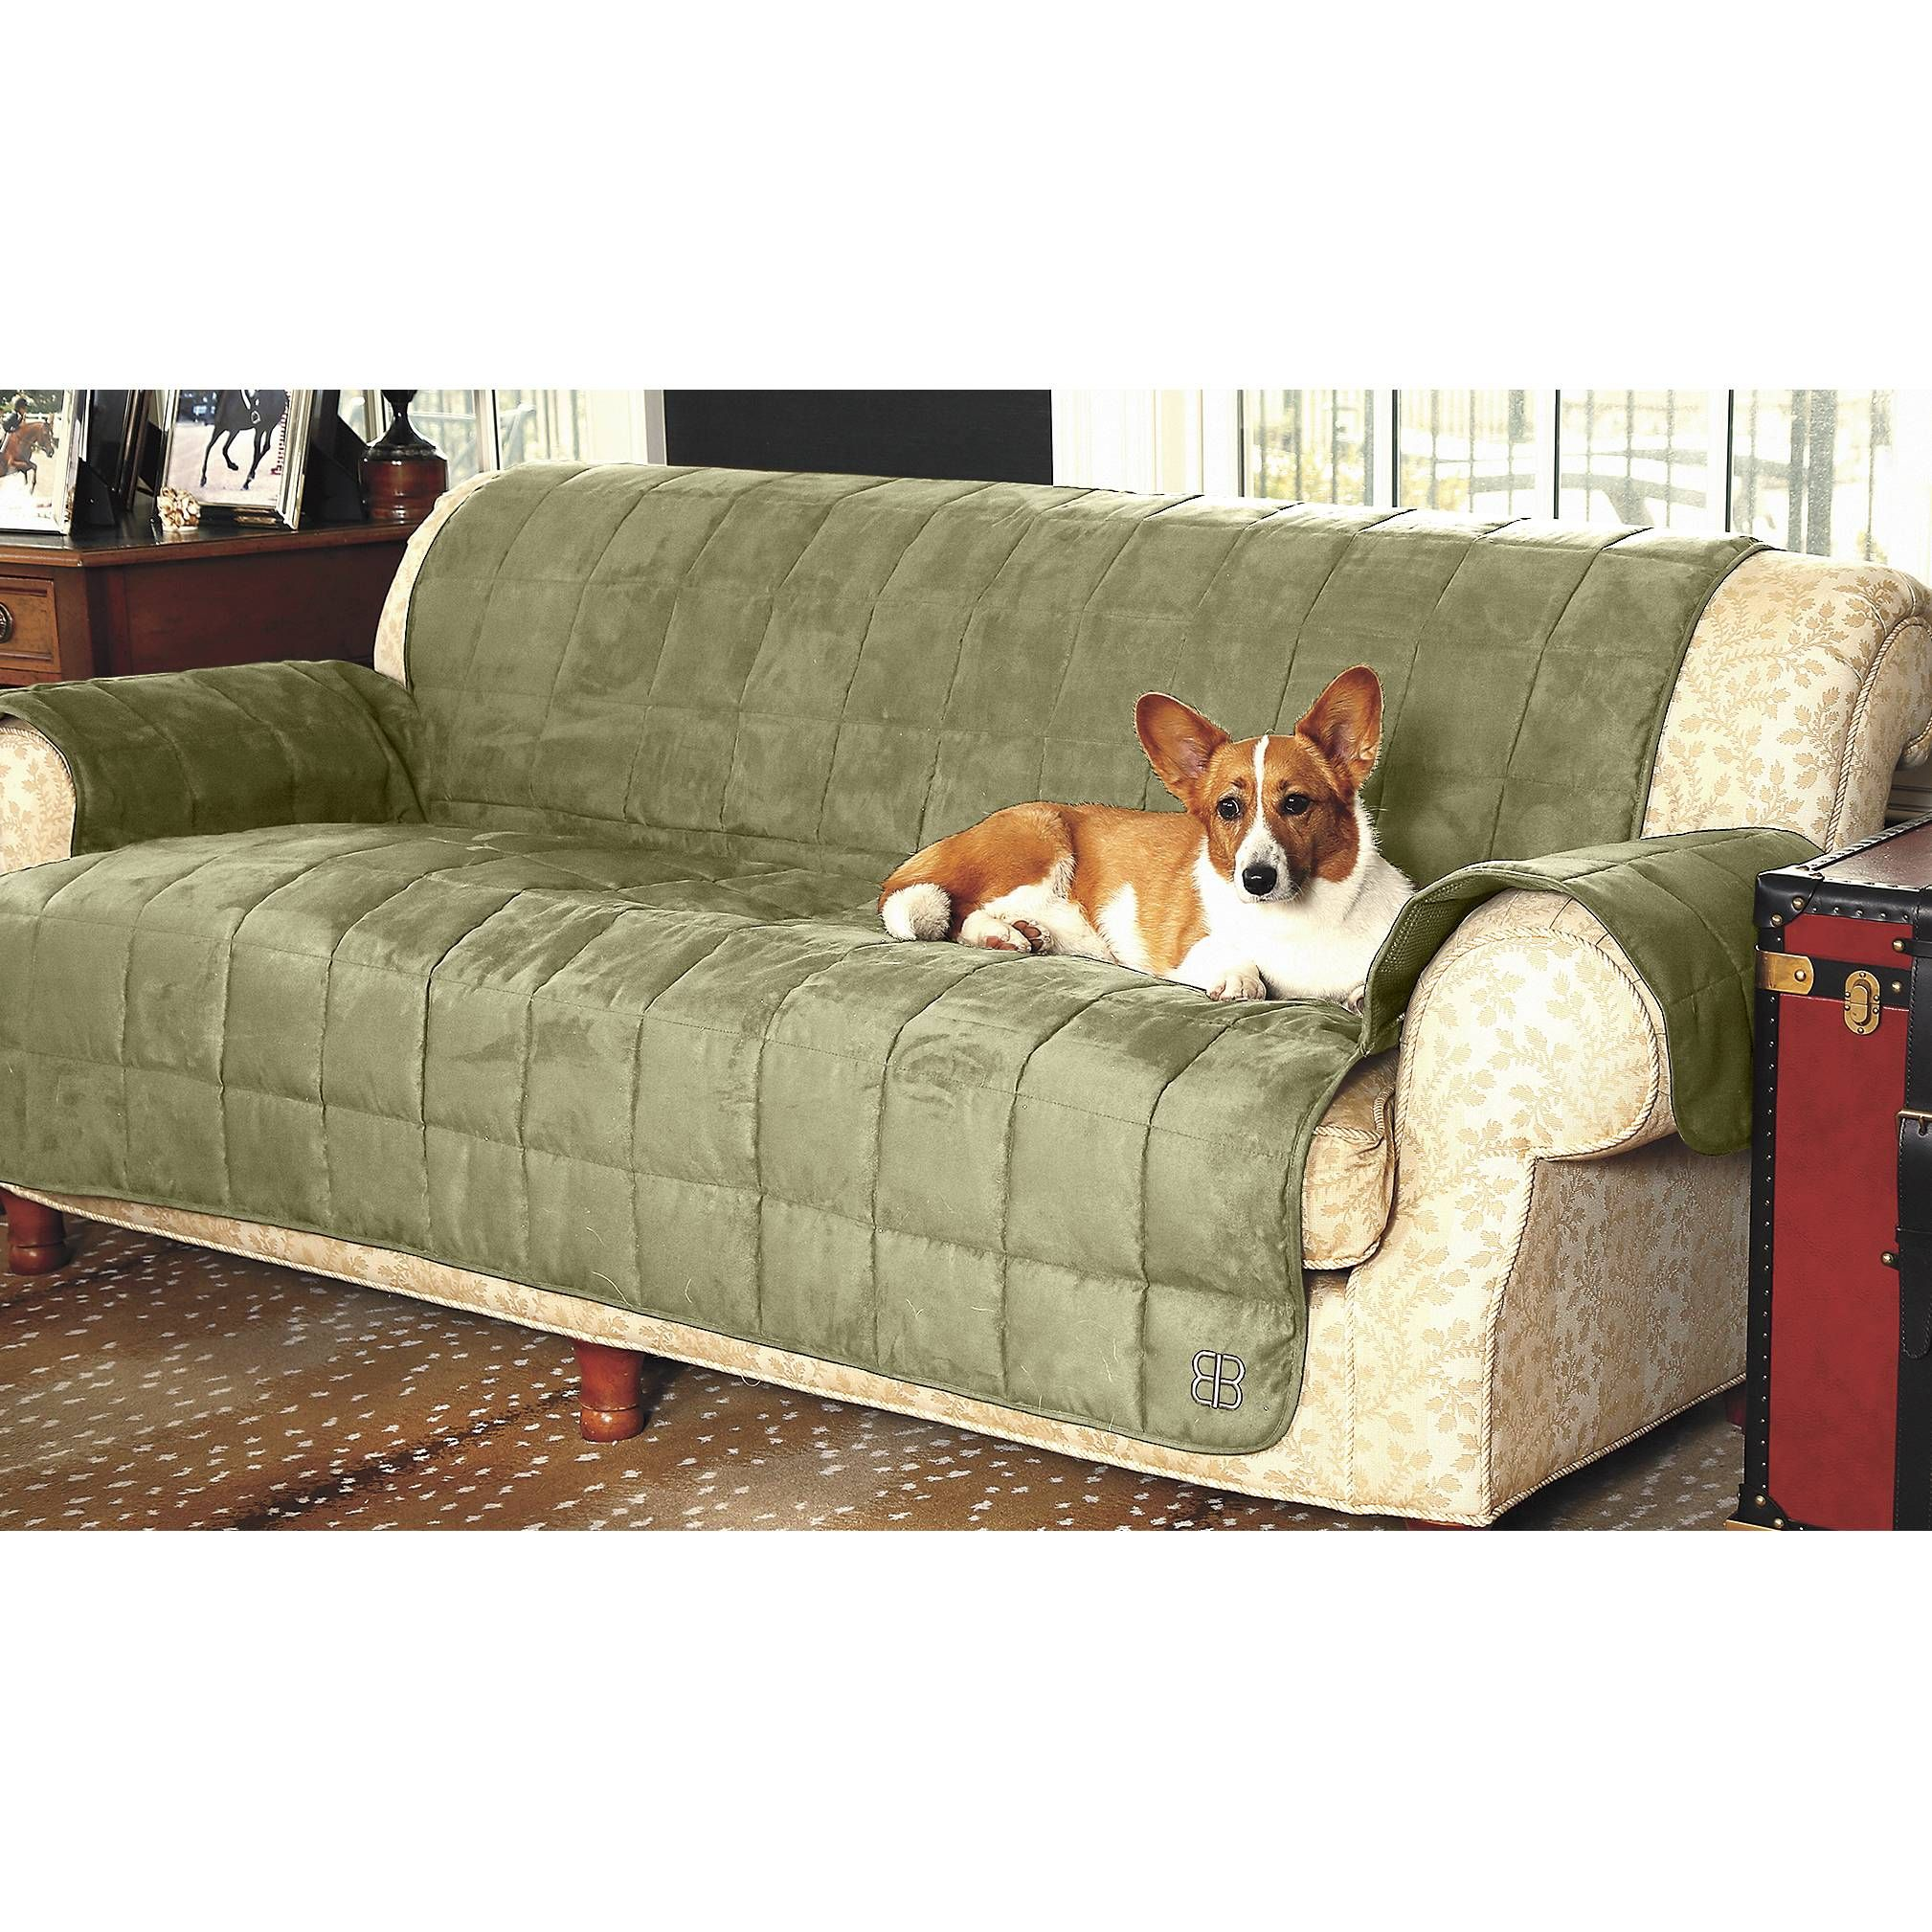 D41068 Dog Gifts Couch Covers Dog Bed